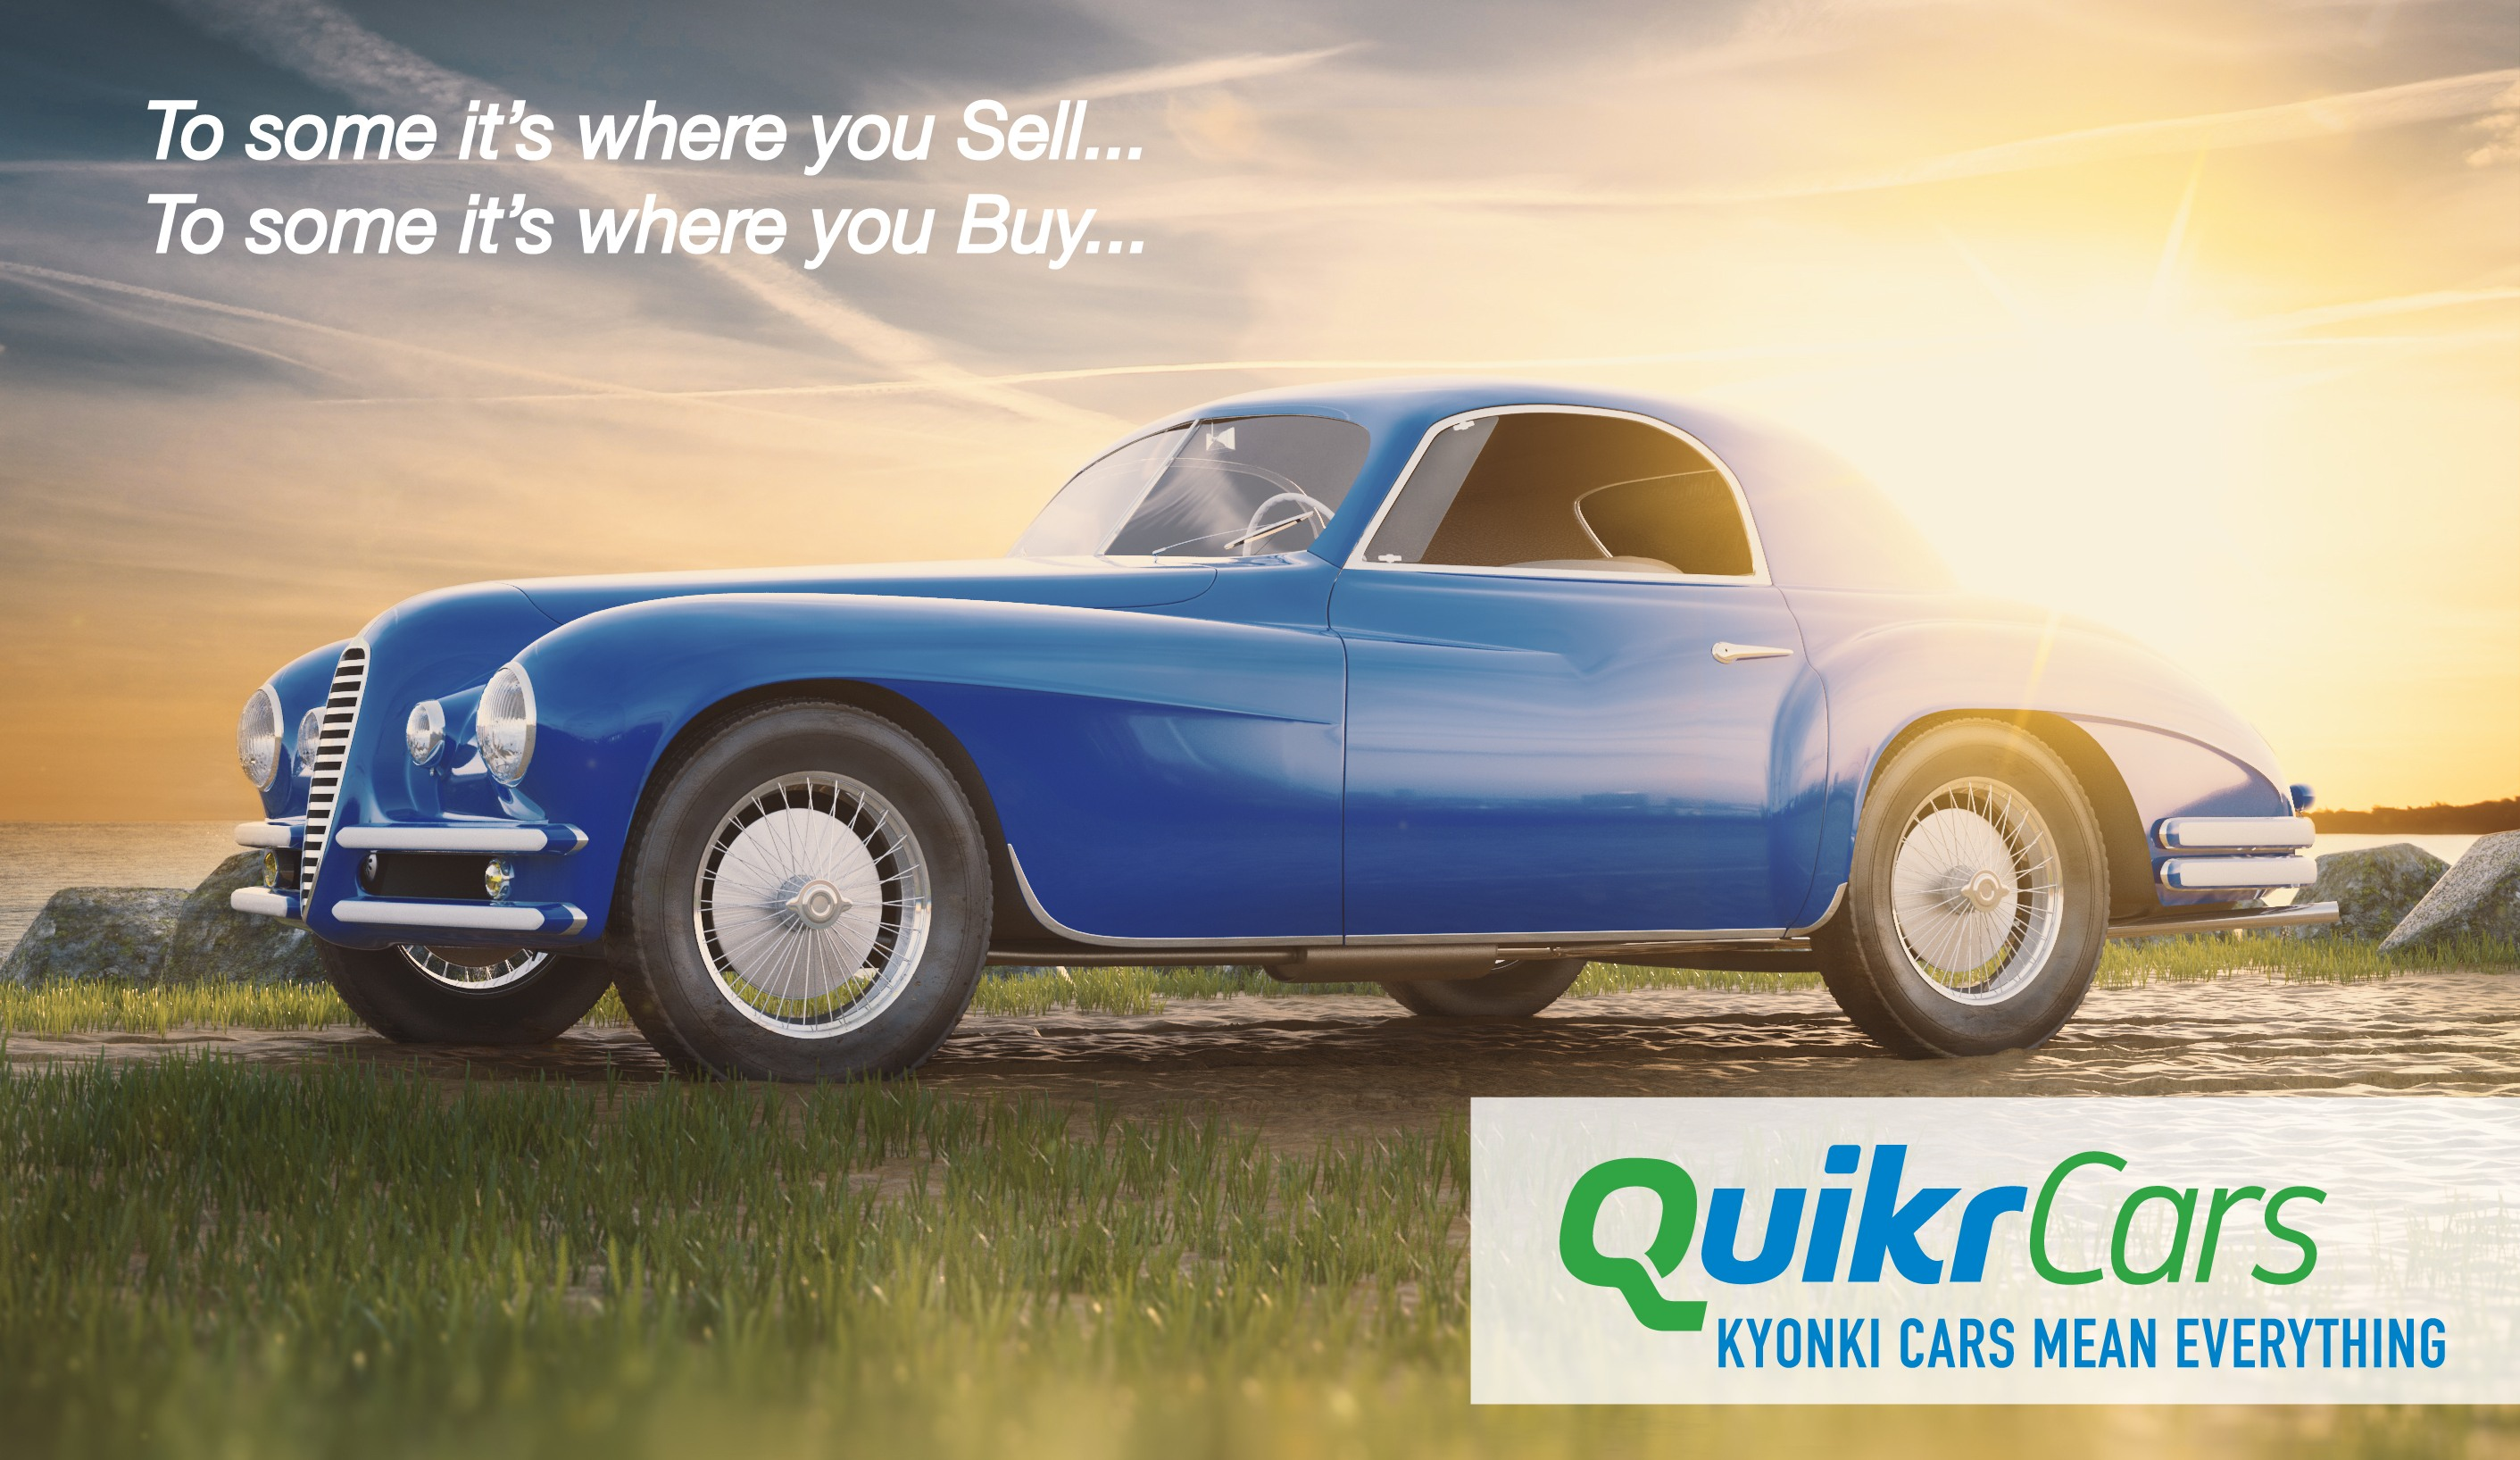 All About Cars >> Quikrcars Its All About Cars Quikr Blog